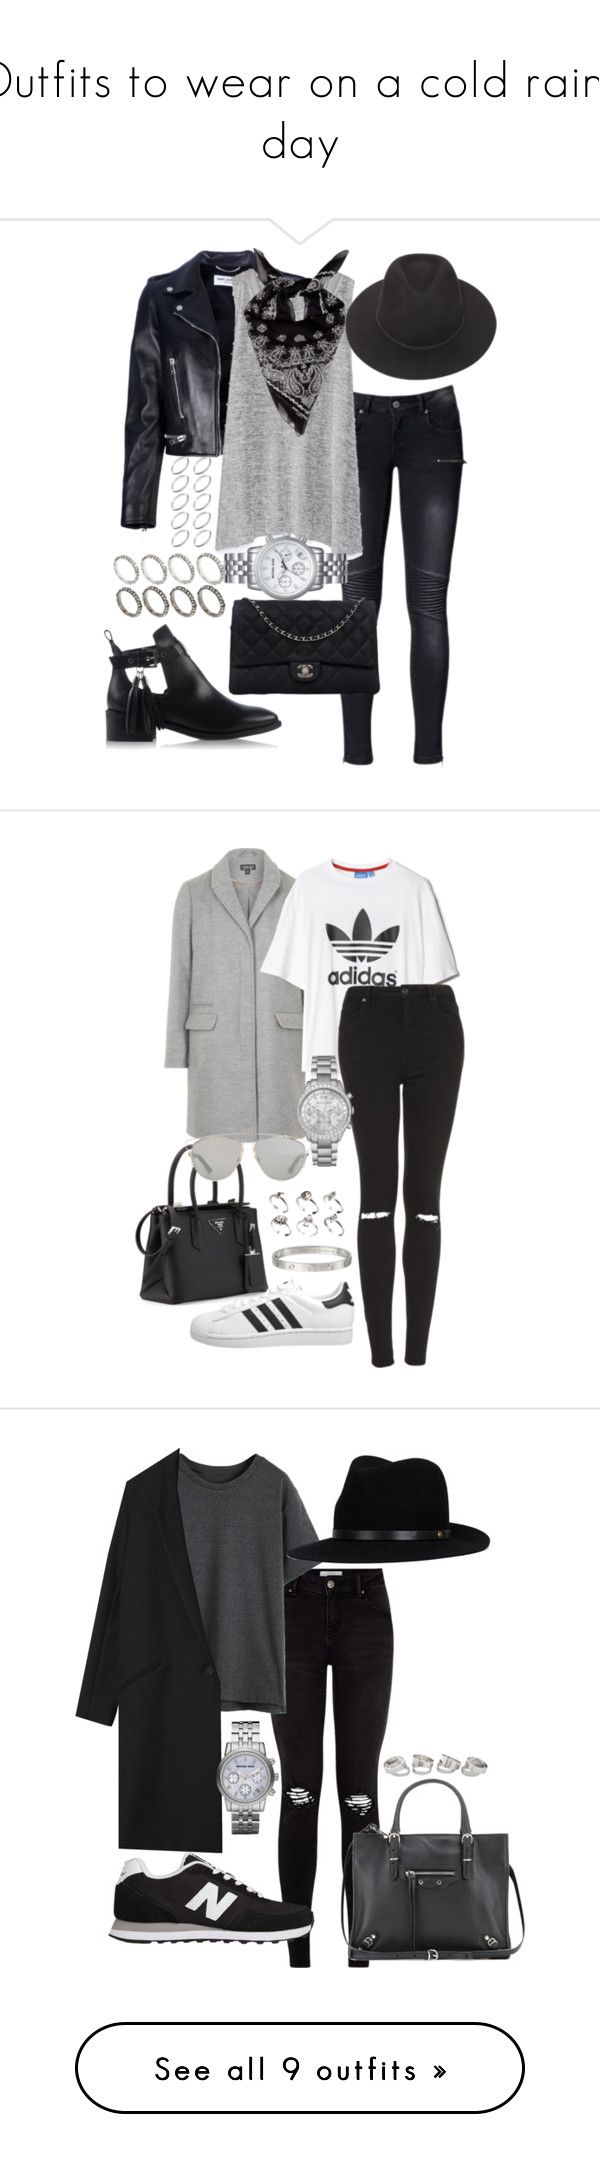 """Outfits to wear on a cold rainy day"" by blendingtwostyles ❤ liked on Polyvore featuring Anine Bing, Yves Saint Laurent, Zara, Brixton, Chanel, KG Kurt Geiger, ASOS, Michael Kors, adidas Originals and Topshop"